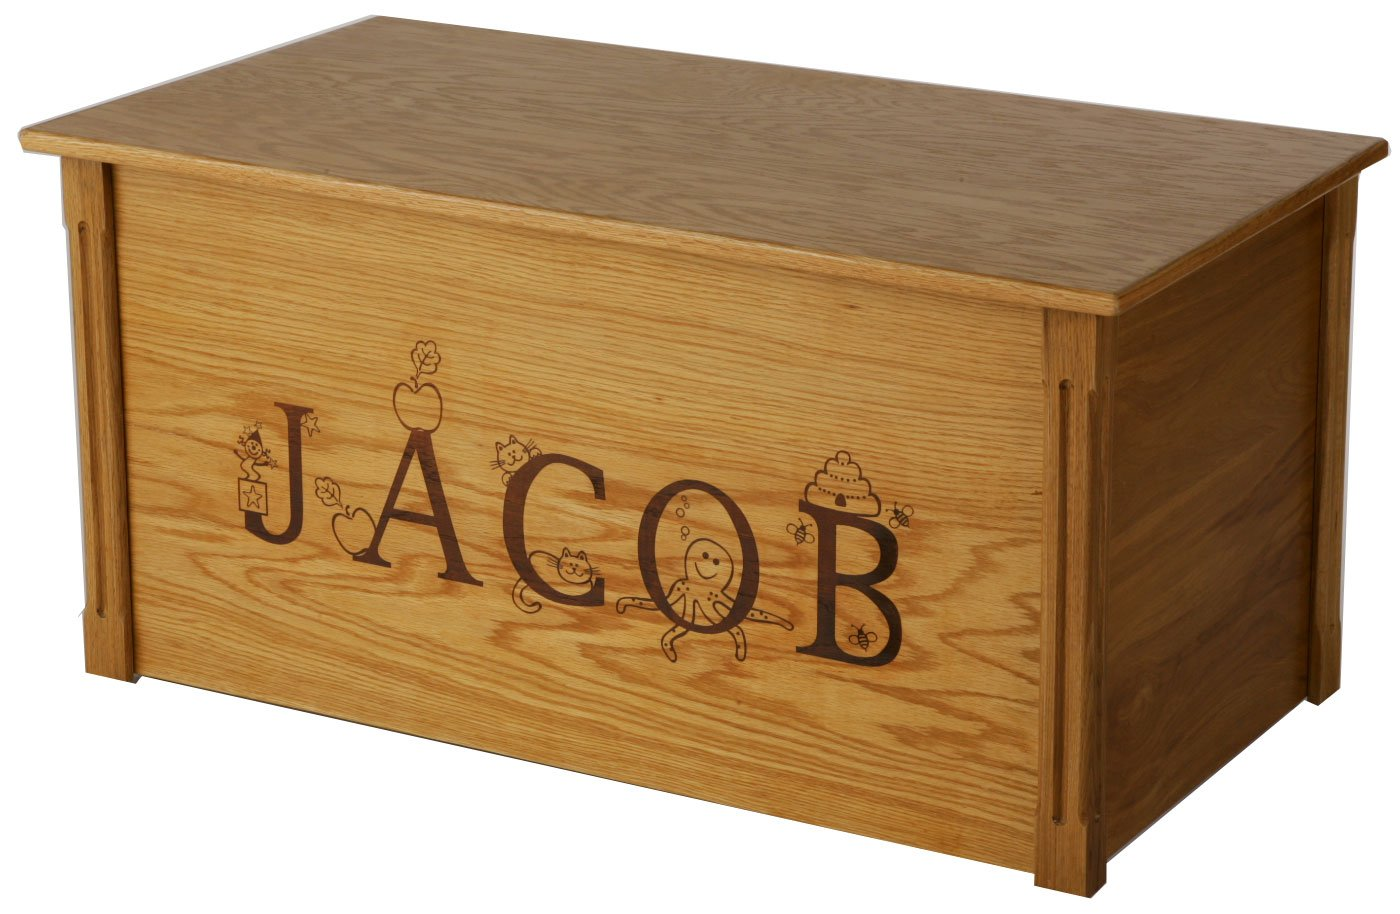 Wood Toy Box, Large Oak Toy Chest, Personalized Thematic Font, Custom Options (Standard Base) by Wood Toy Box